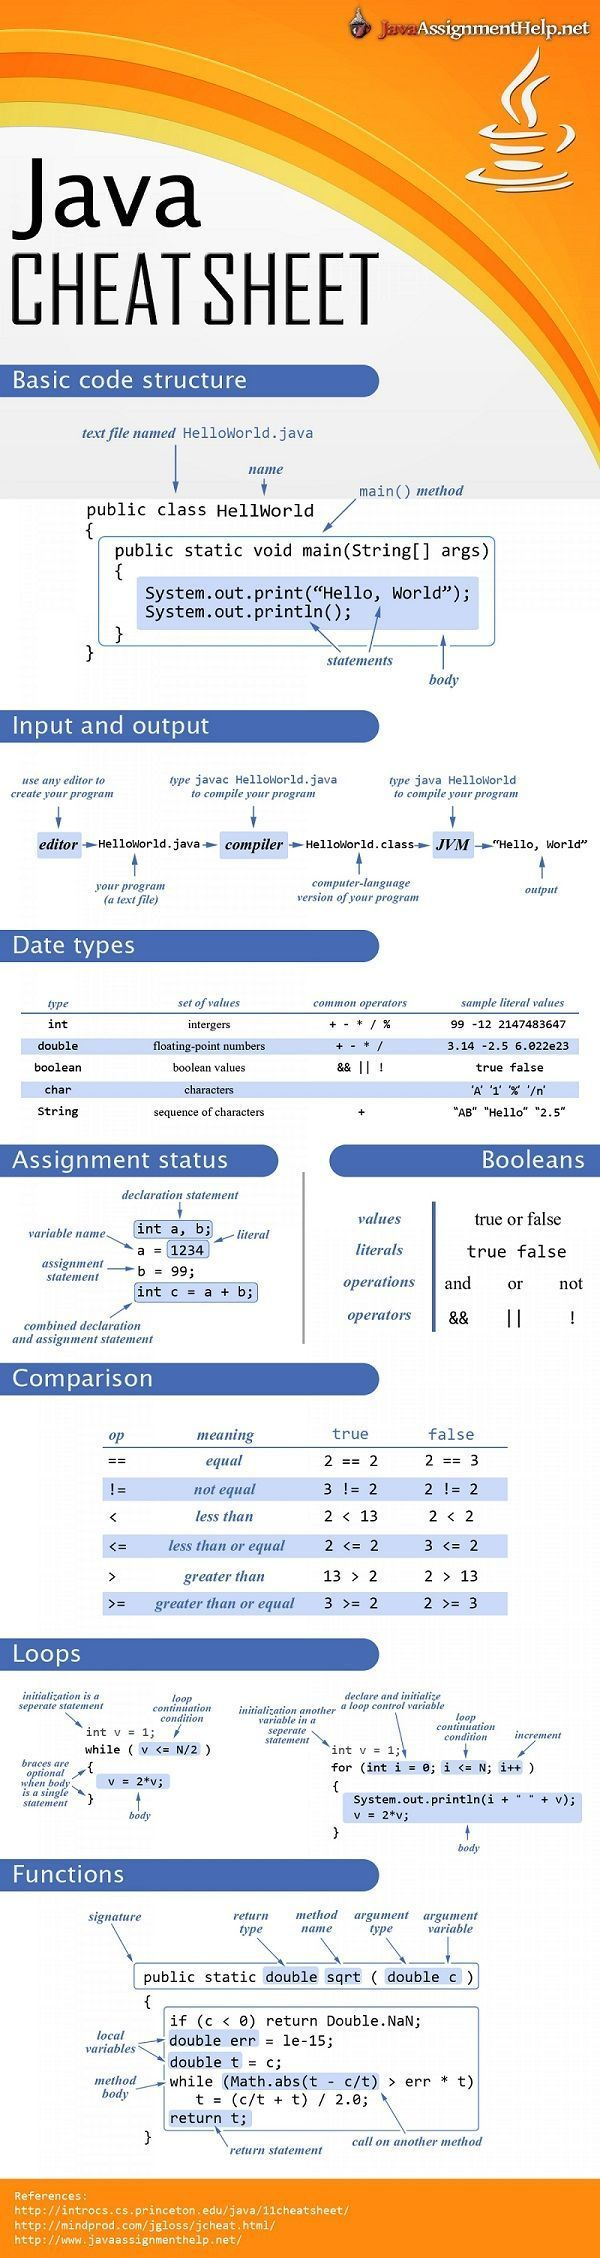 A Java Cheat Sheet For Programmers - #Cheat #Java #Programmers #Sheet #programingsoftware